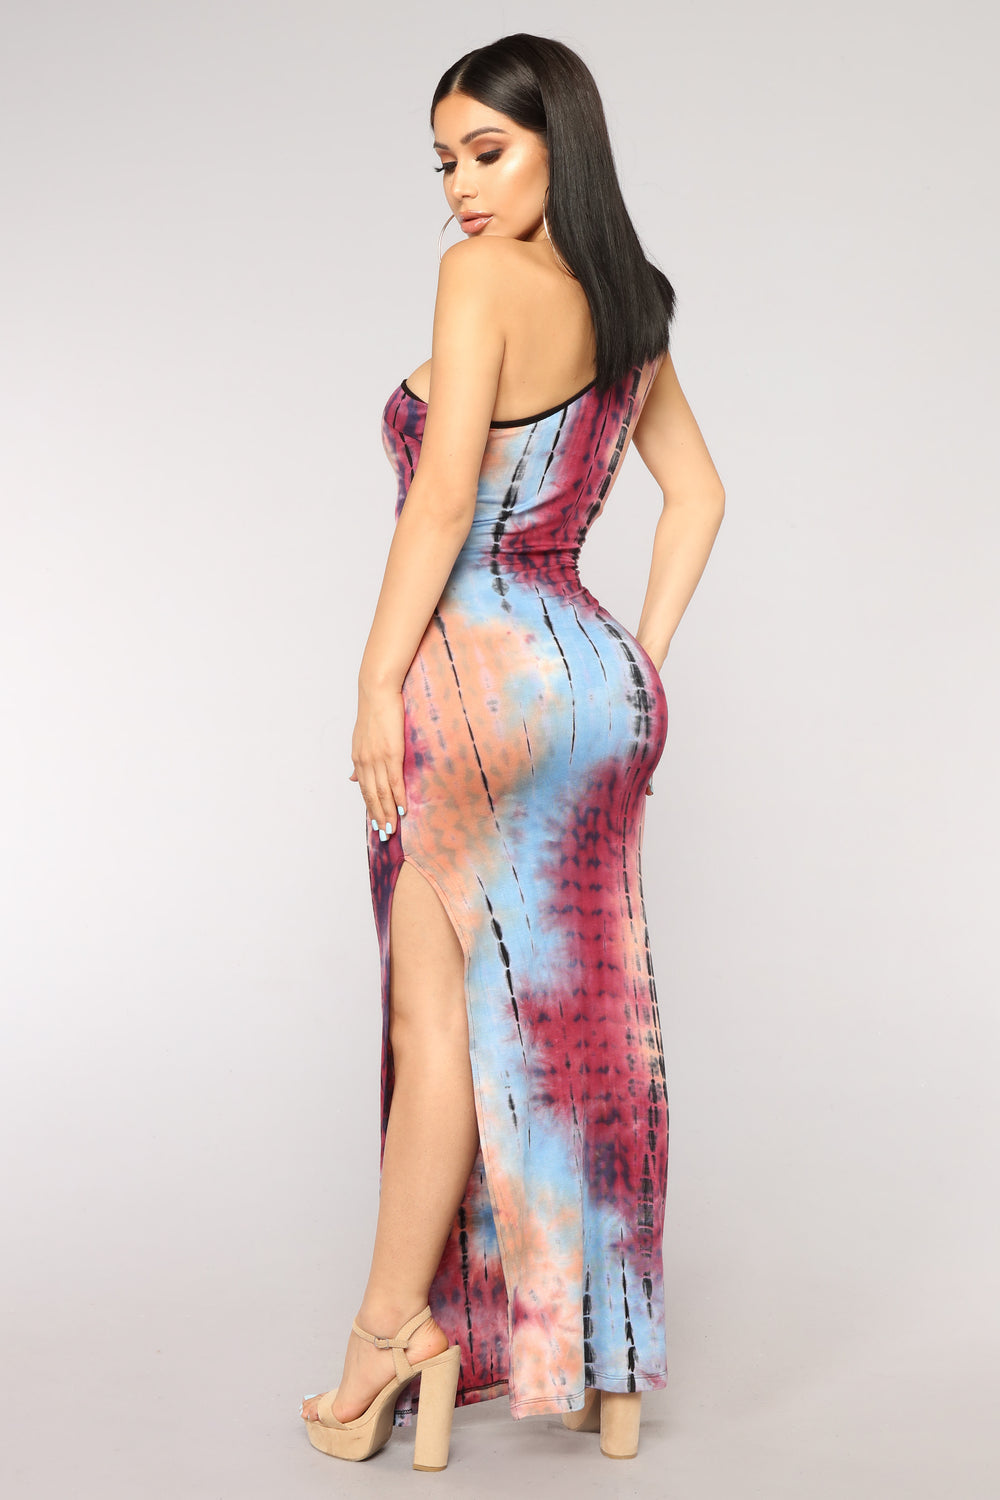 Soul Sister Tie Dye Dress - Multi